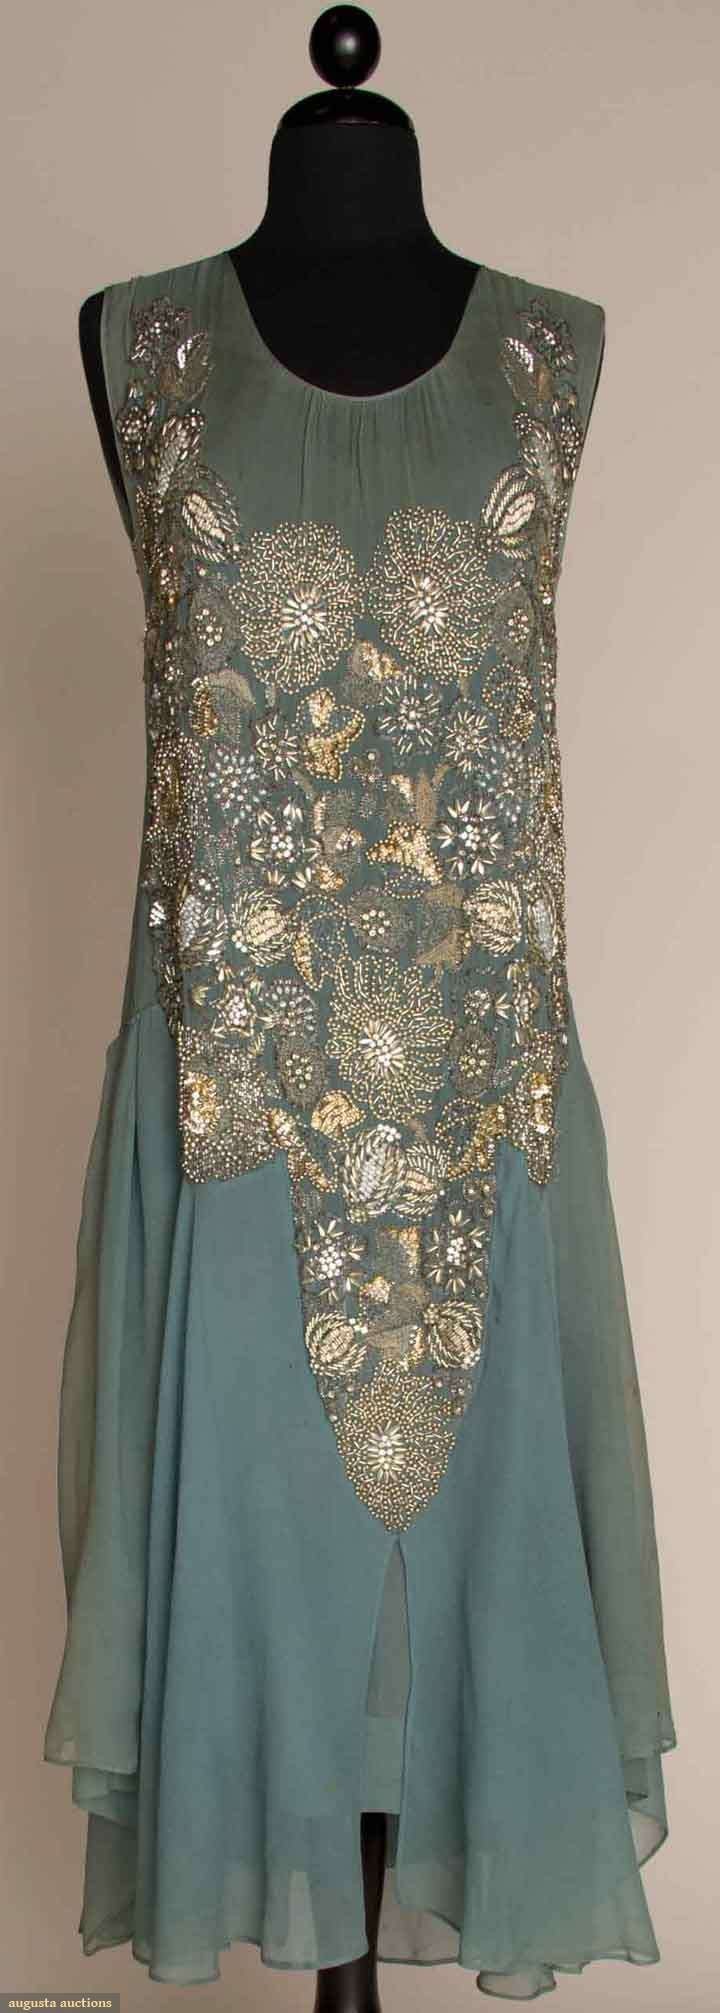 Jeweled Chiffon Dress, France, c1925